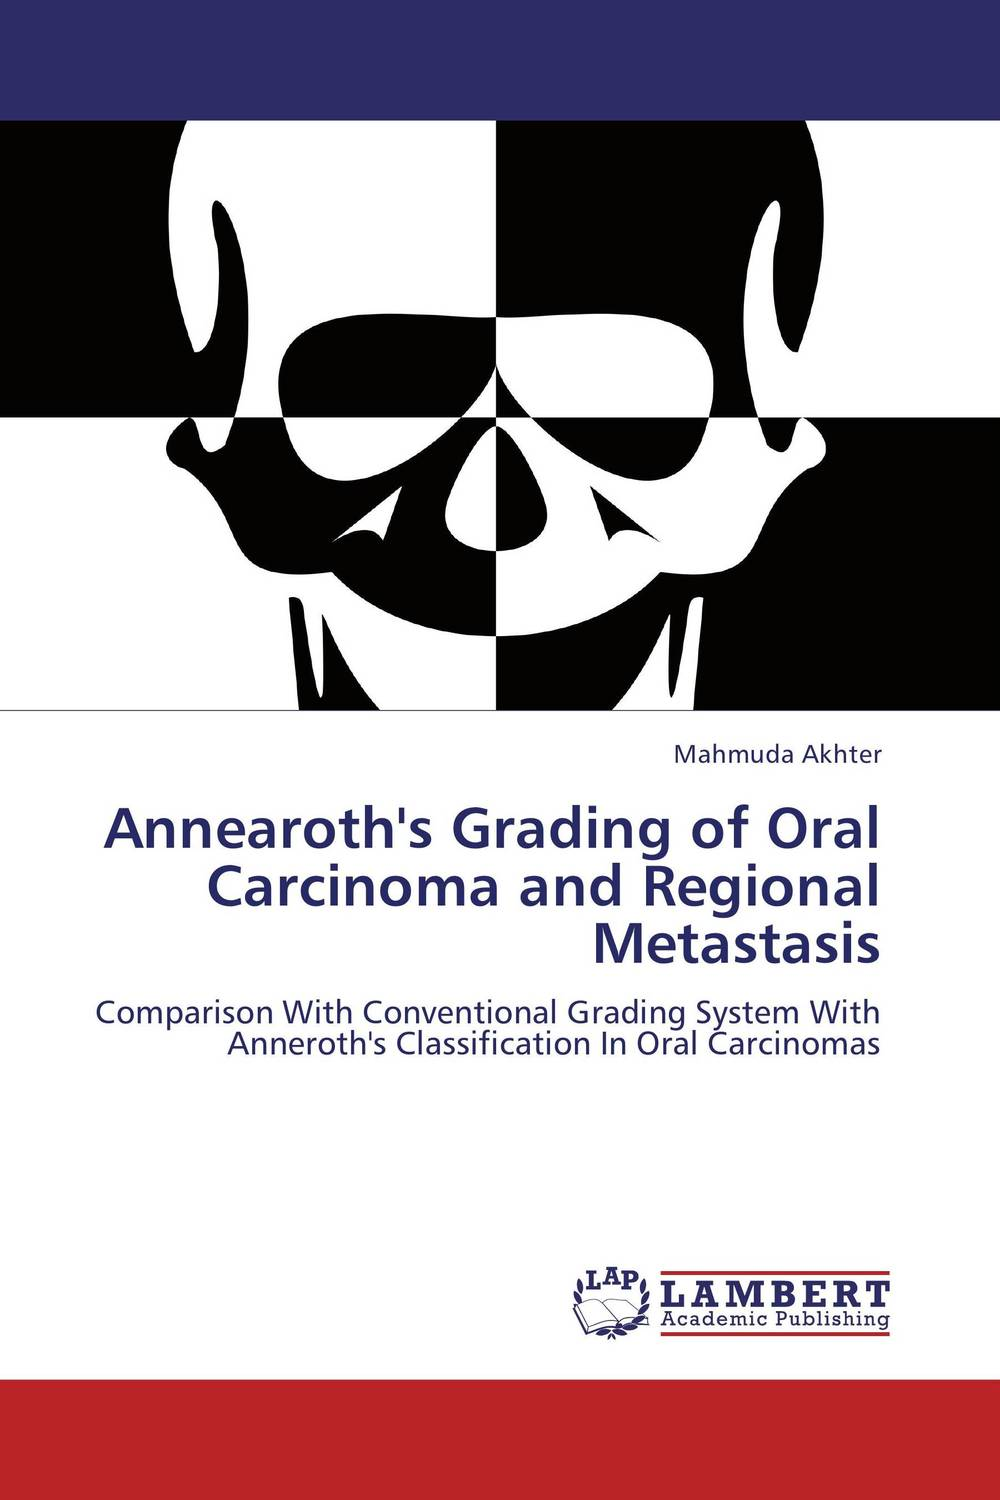 Annearoth's Grading of Oral Carcinoma and Regional Metastasis